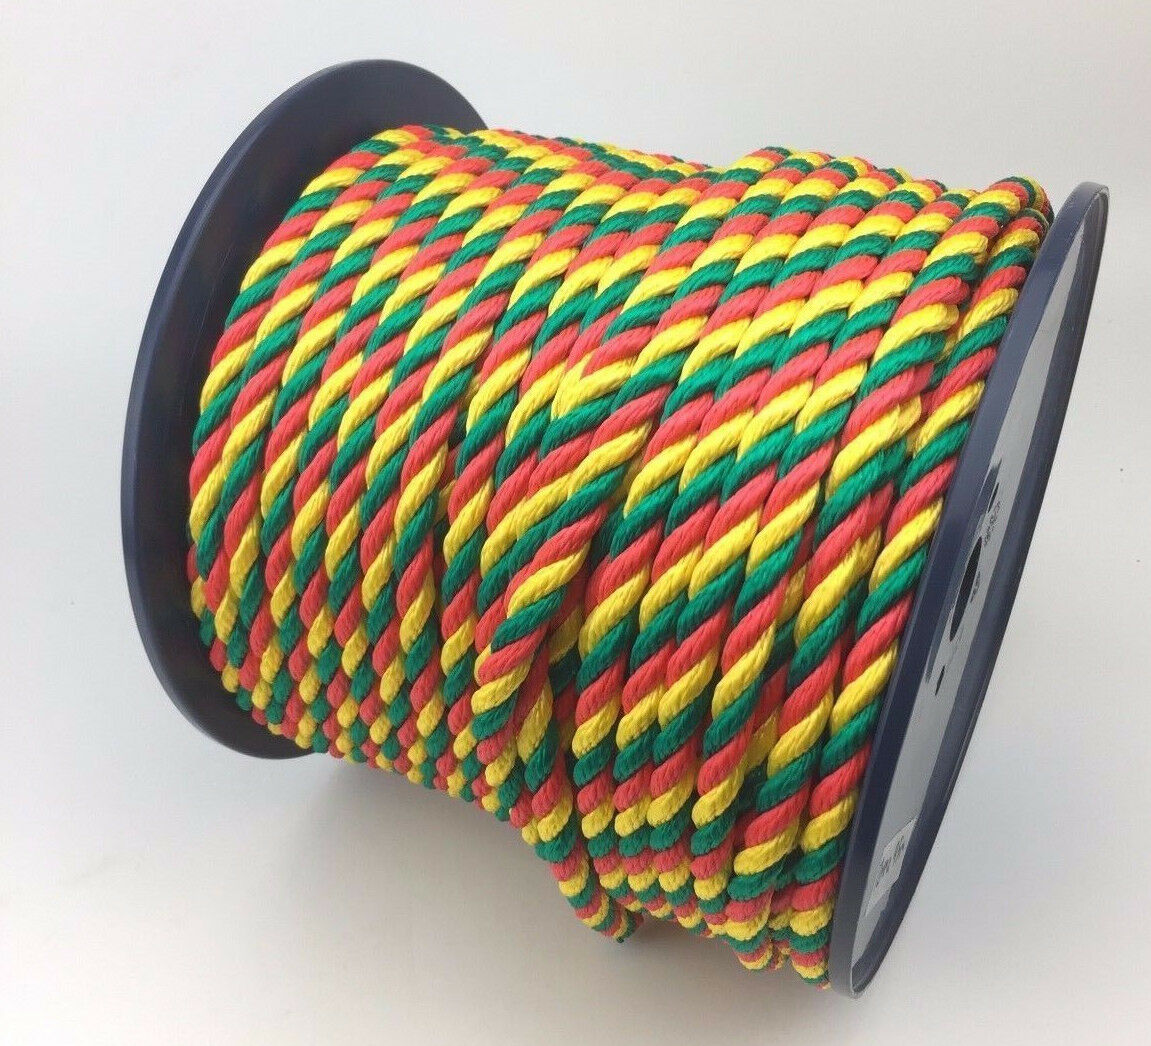 12mm Softline Rope x 75 Metre reel, Jester, Yacht, Sailing, Boats, Marine,canals